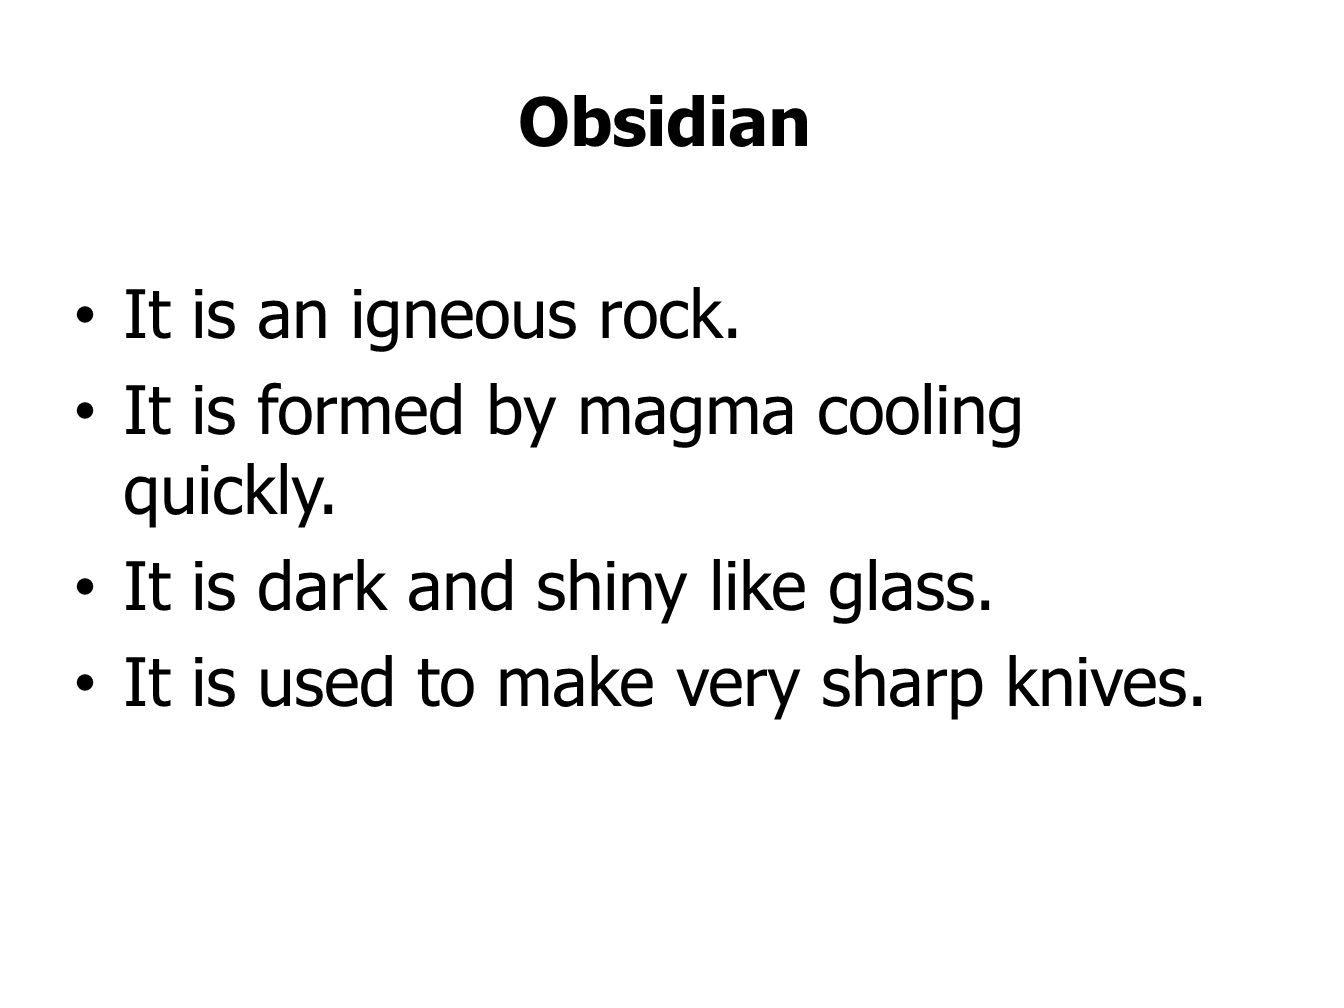 Obsidian It is an igneous rock. It is formed by magma cooling quickly. It is dark and shiny like glass.